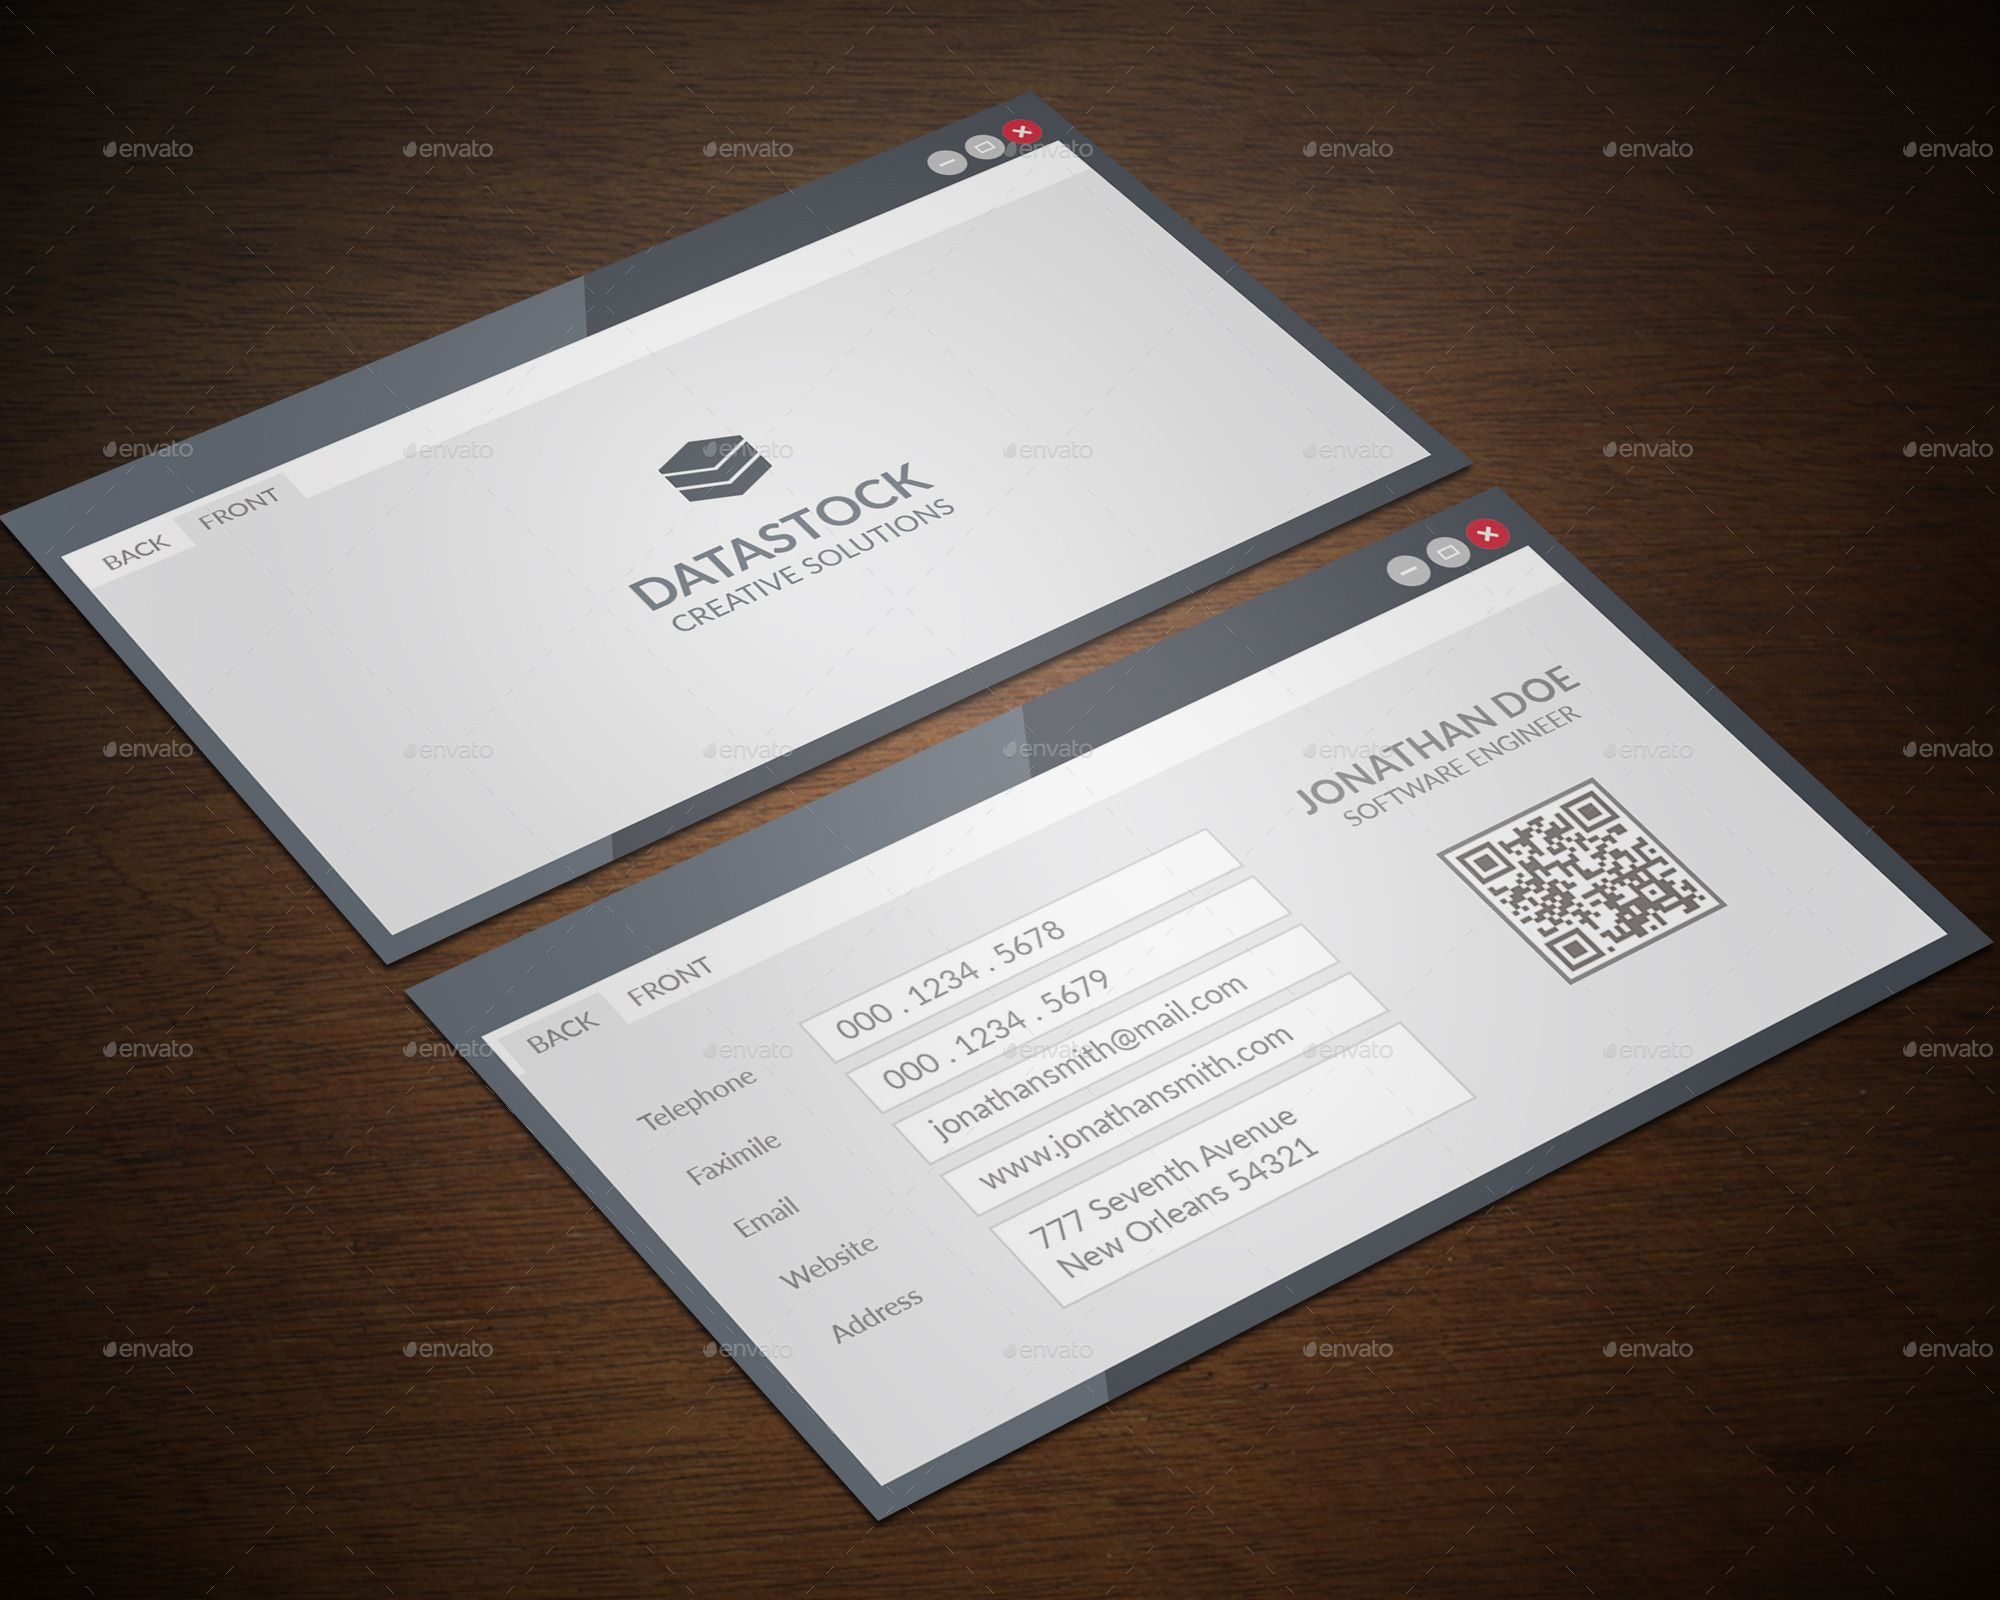 Software Engineer Business Card | Pinterest | Business cards ...